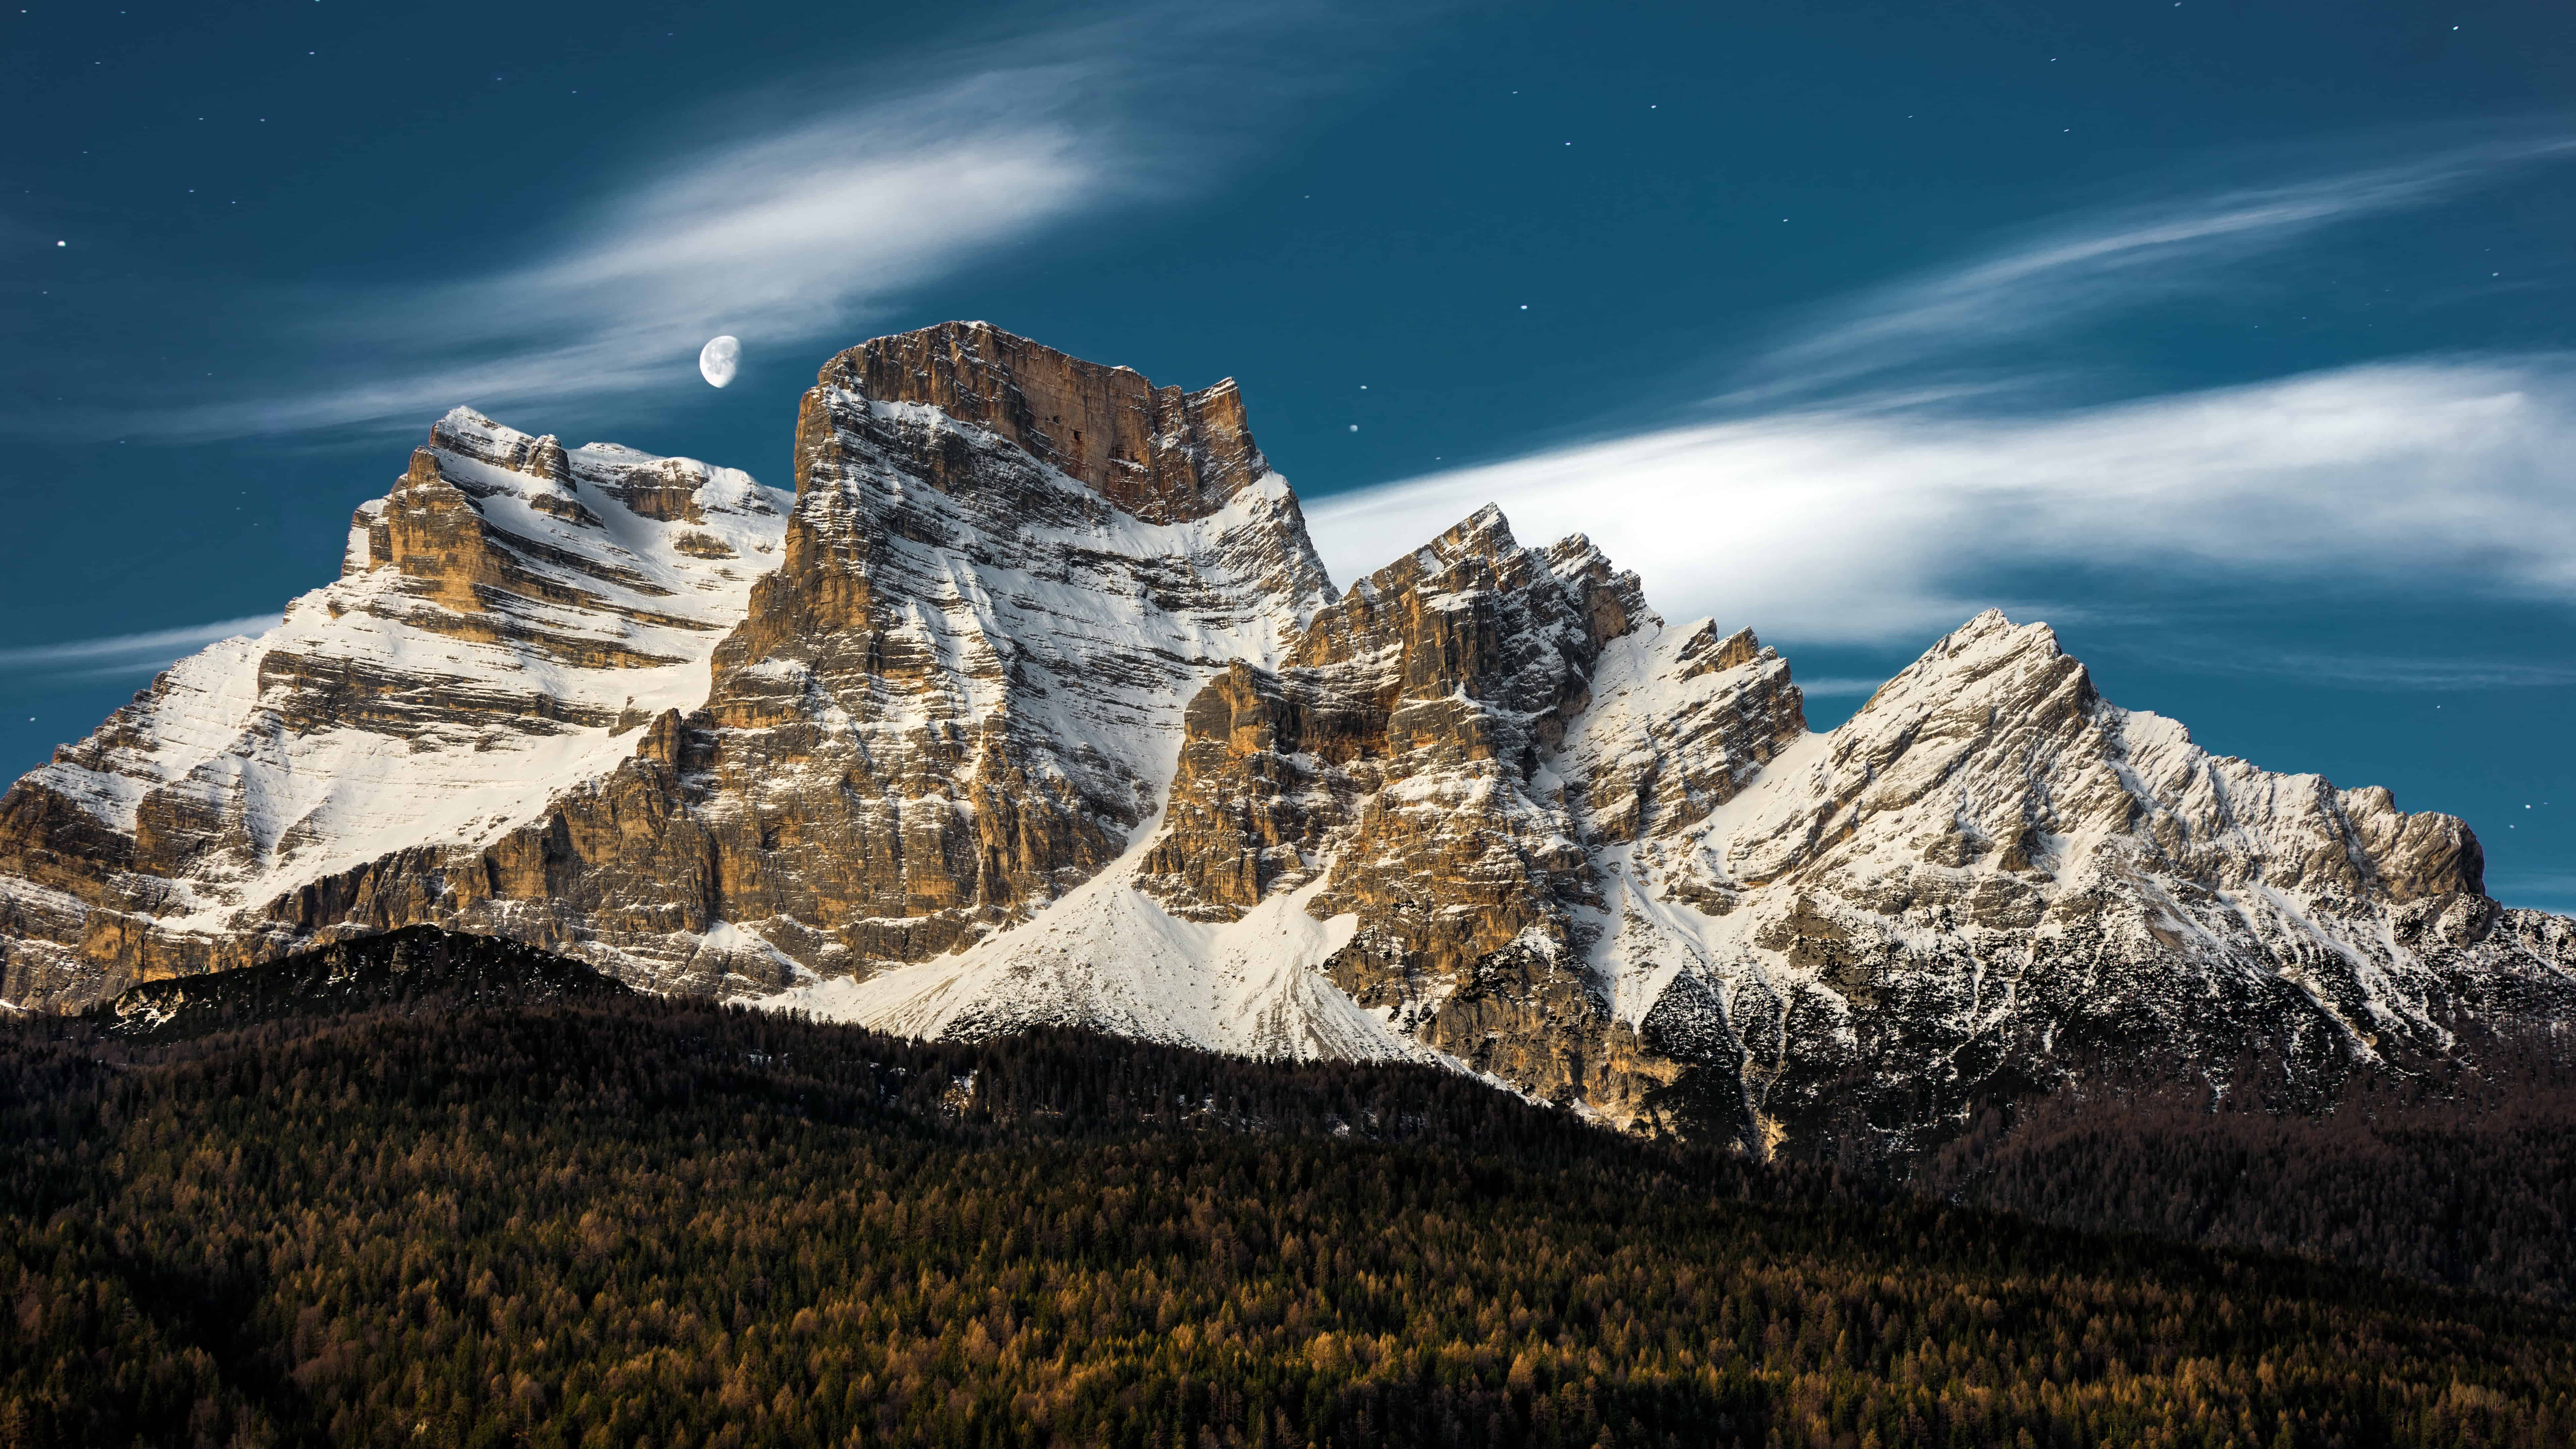 dolomites mountains italy uhd 8k wallpaper